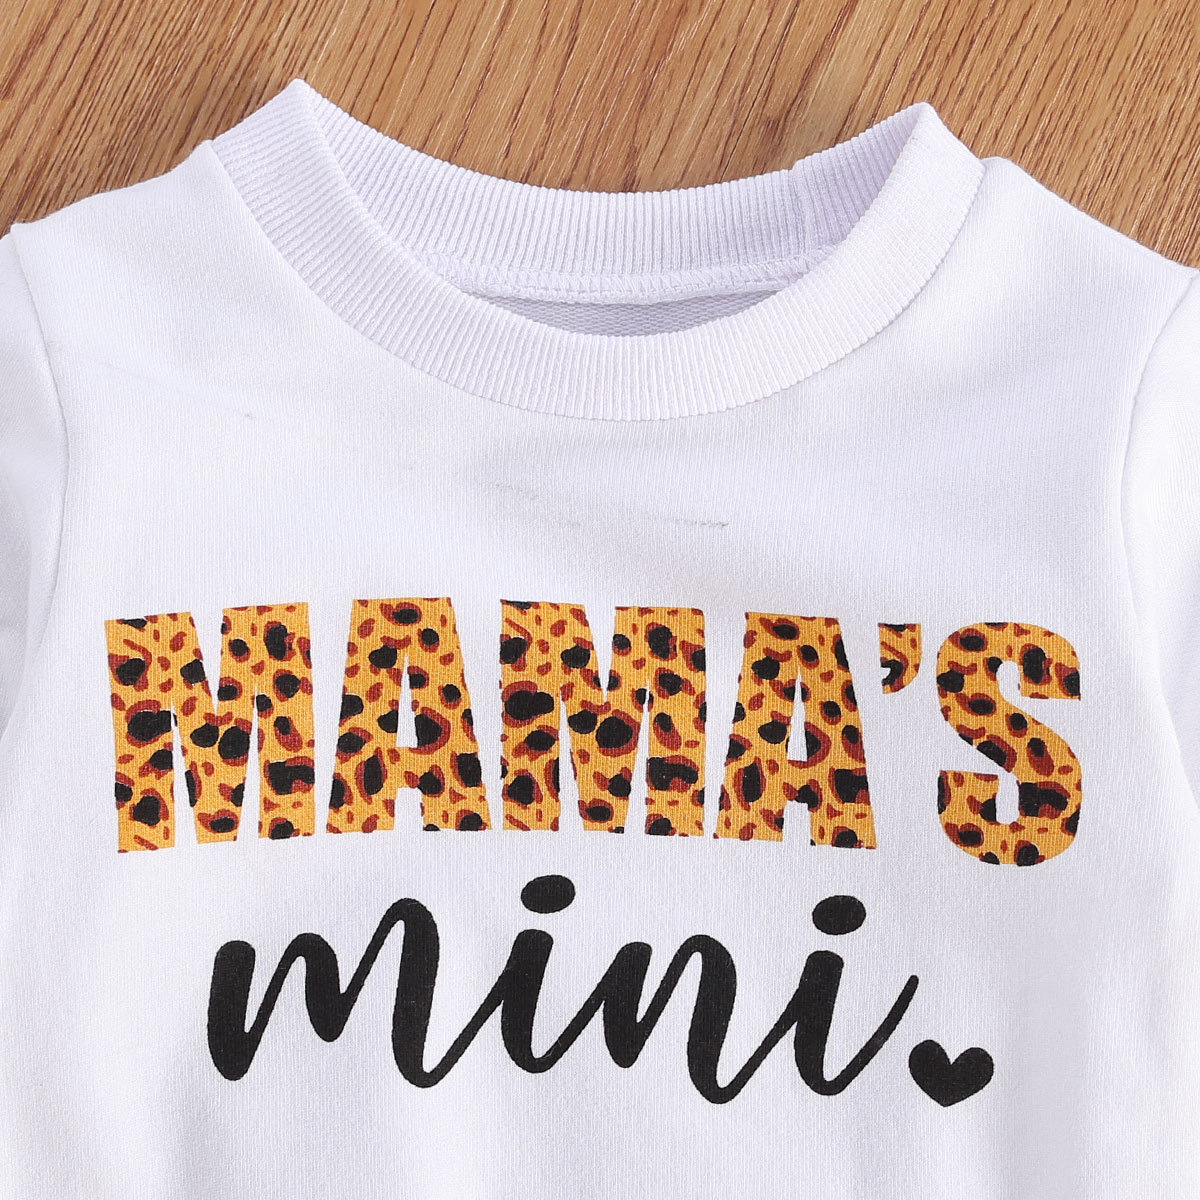 2020 Toddler Baby Girls Boys Autumn Clothes Letter Print Round Collar Long Sleeve Pullover Top Sweatshirt Outfits 0-3T Clothing 3